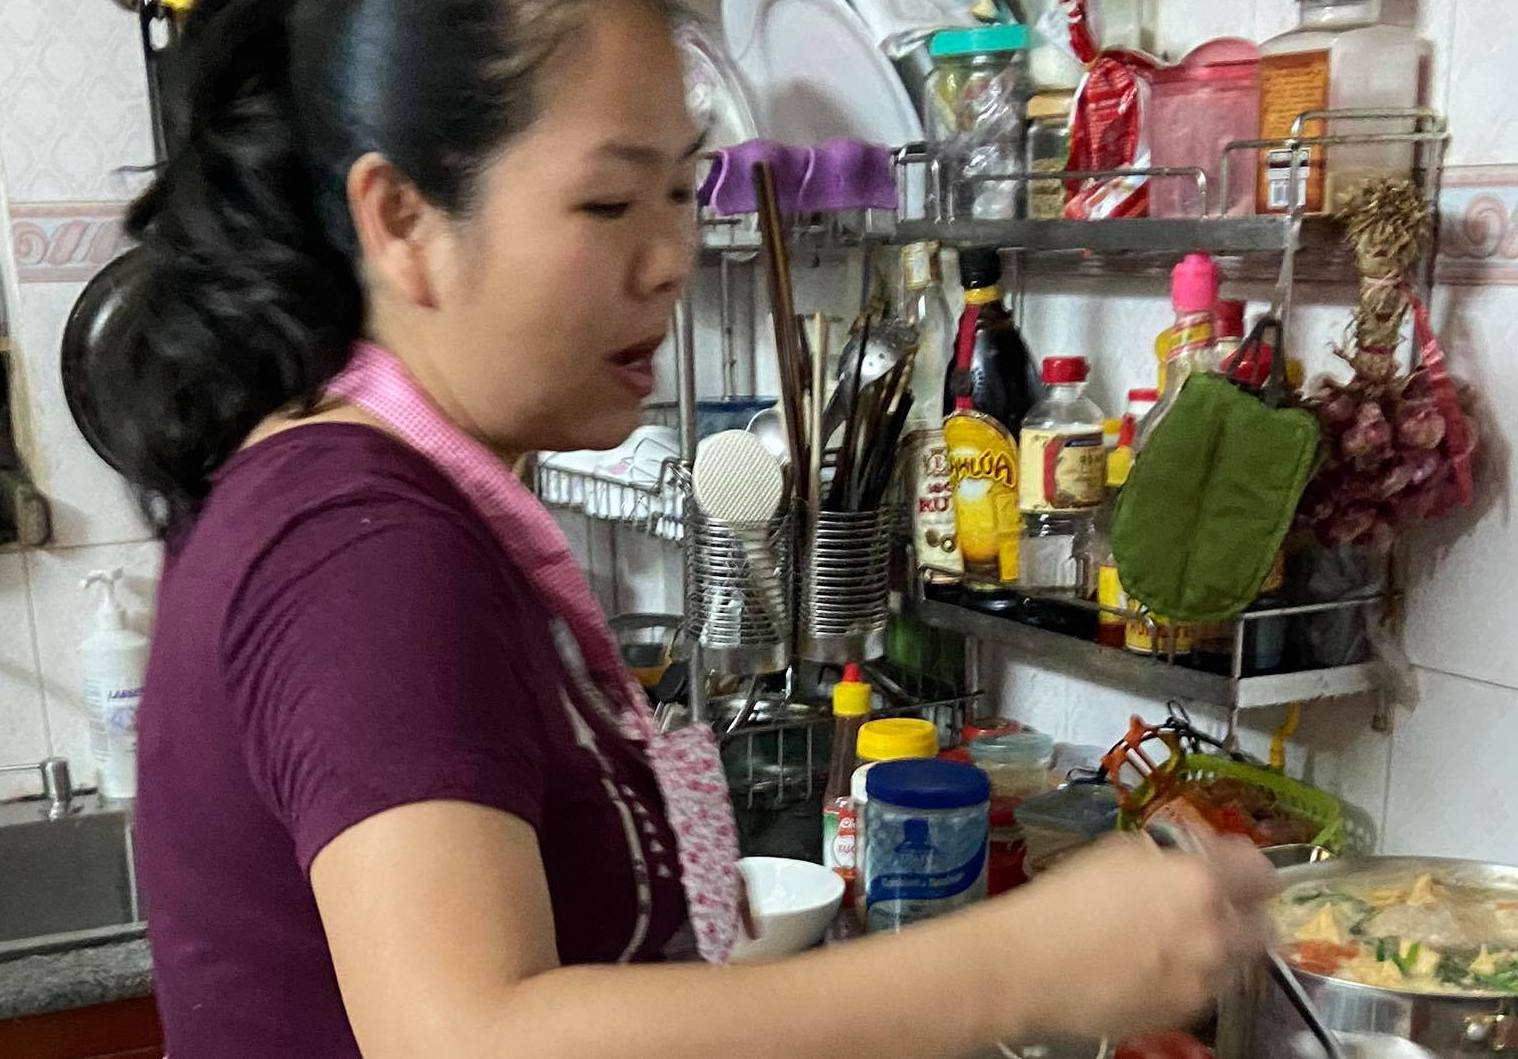 Ms. Thuan in her kitchen